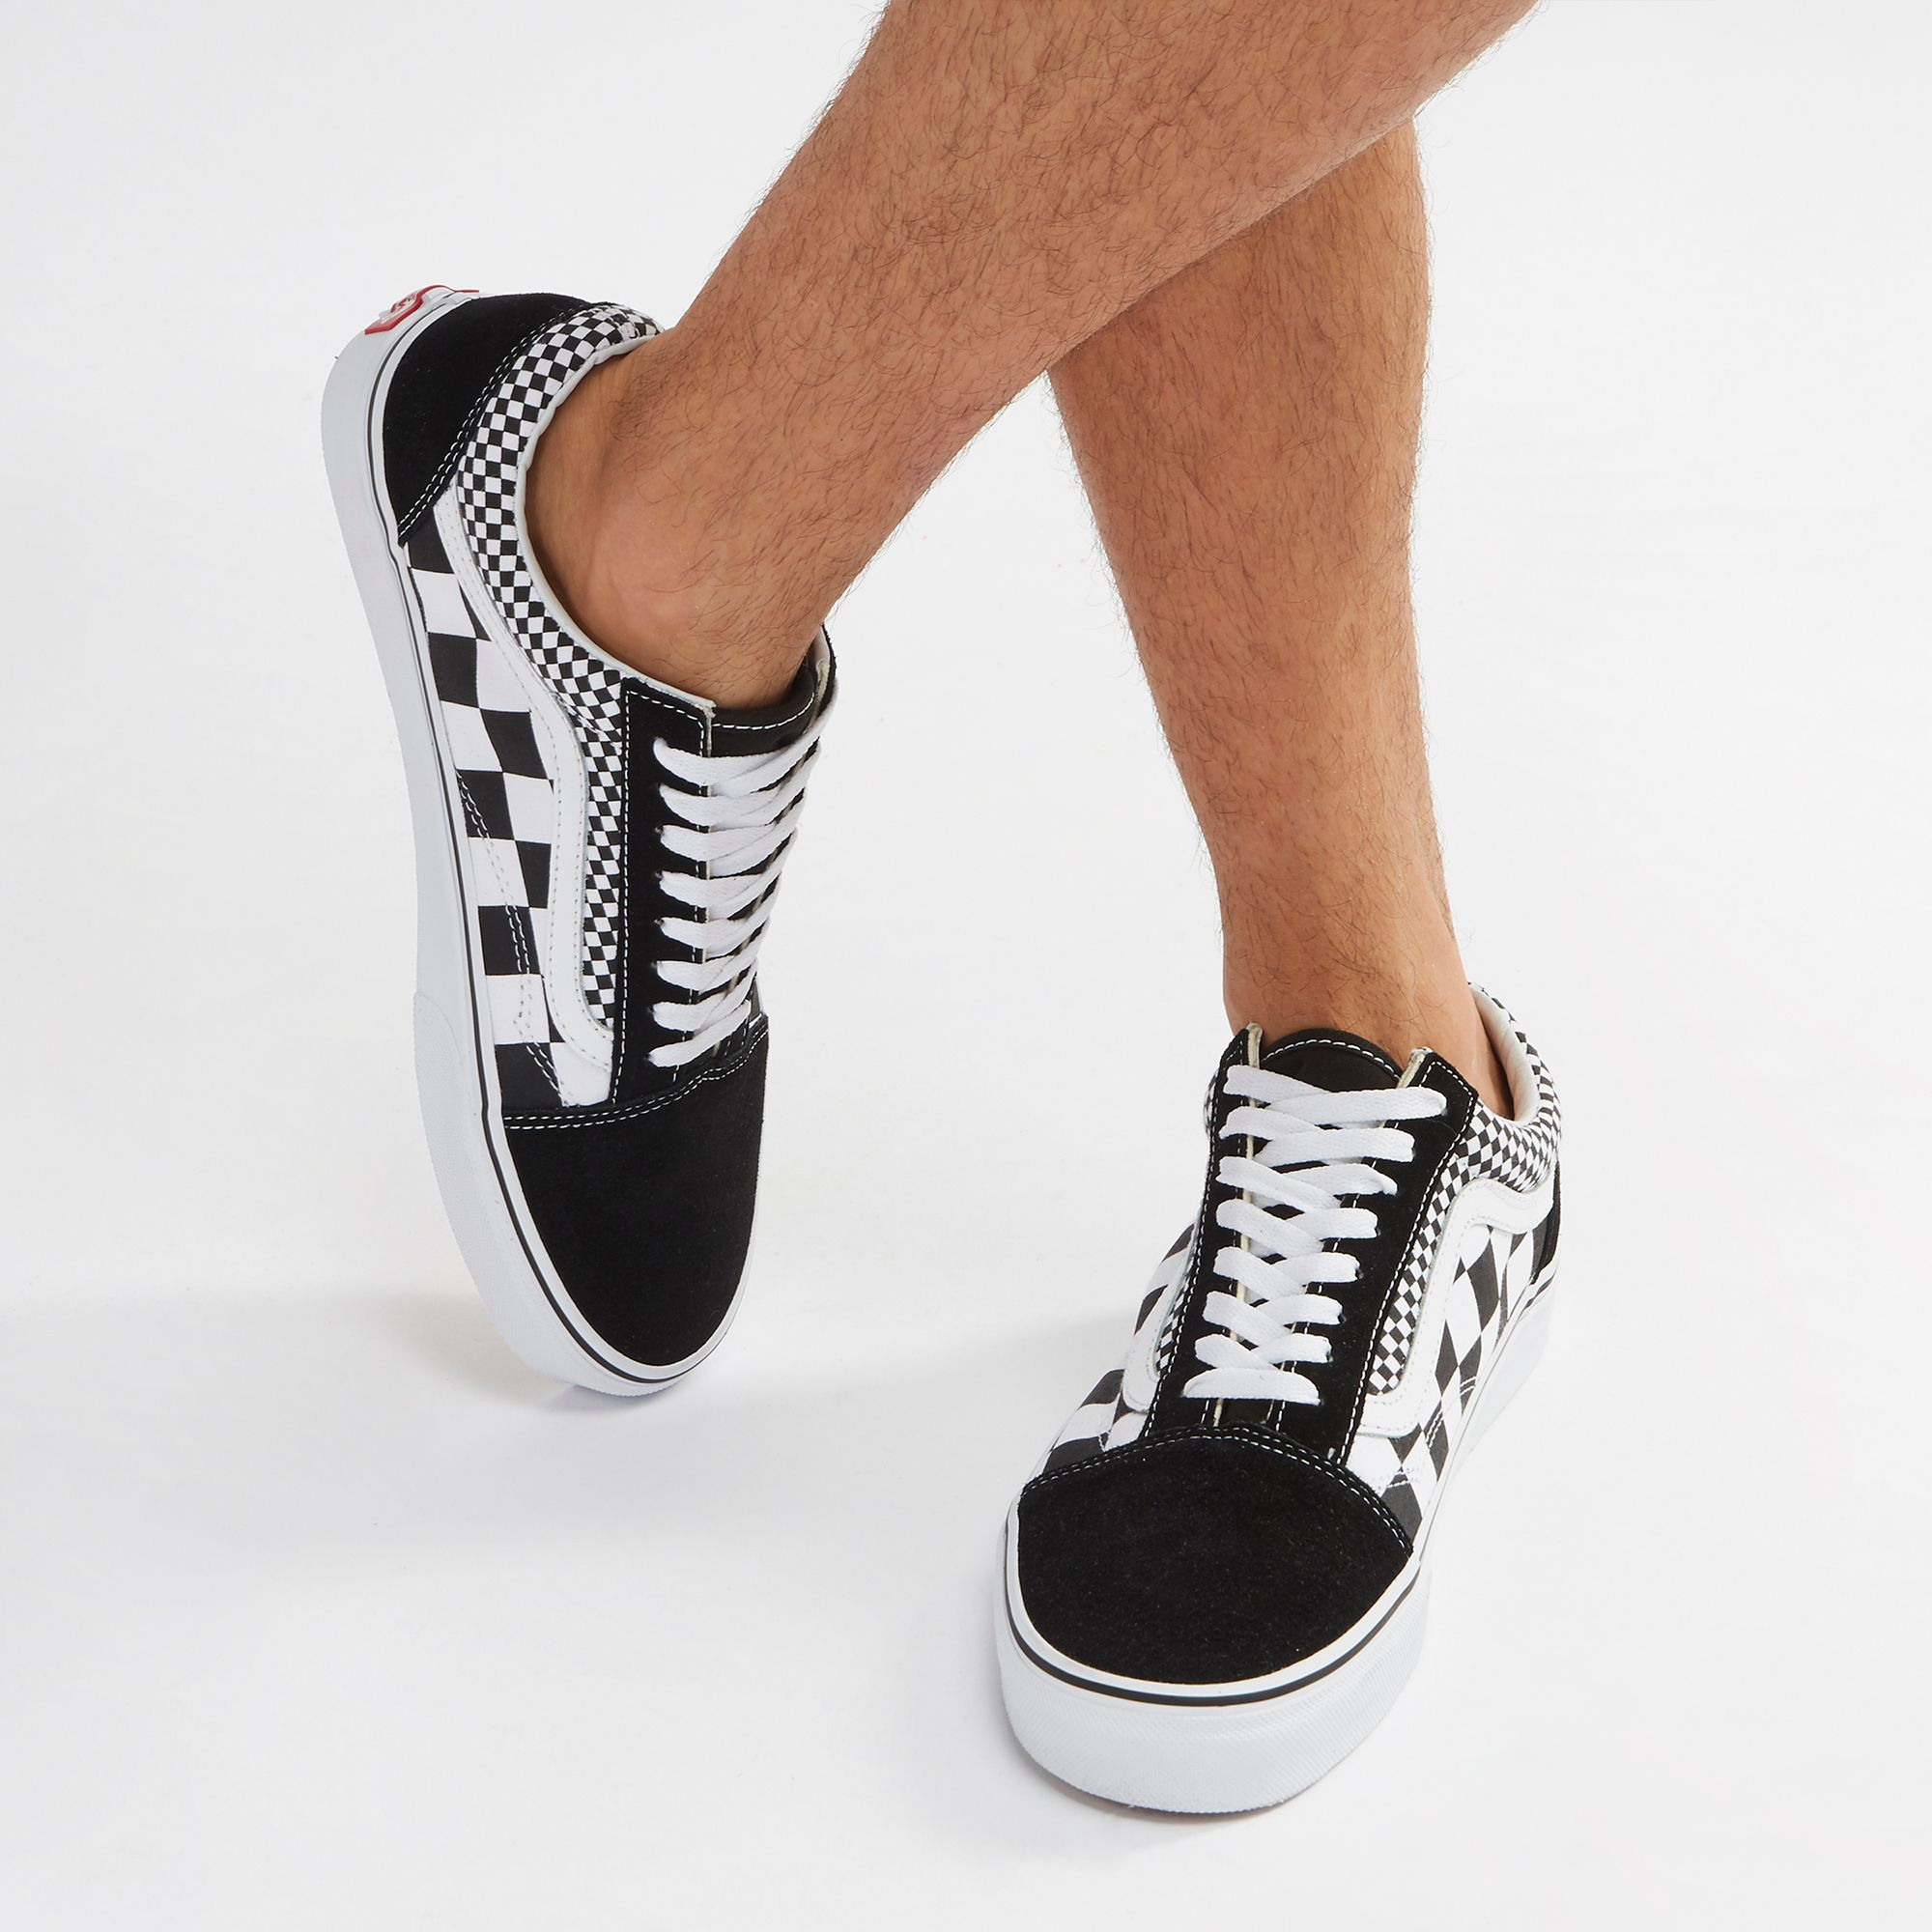 516f4a49a0 Shop Black Vans Old Skool Mix Checkered Shoe for Unisex by Vans